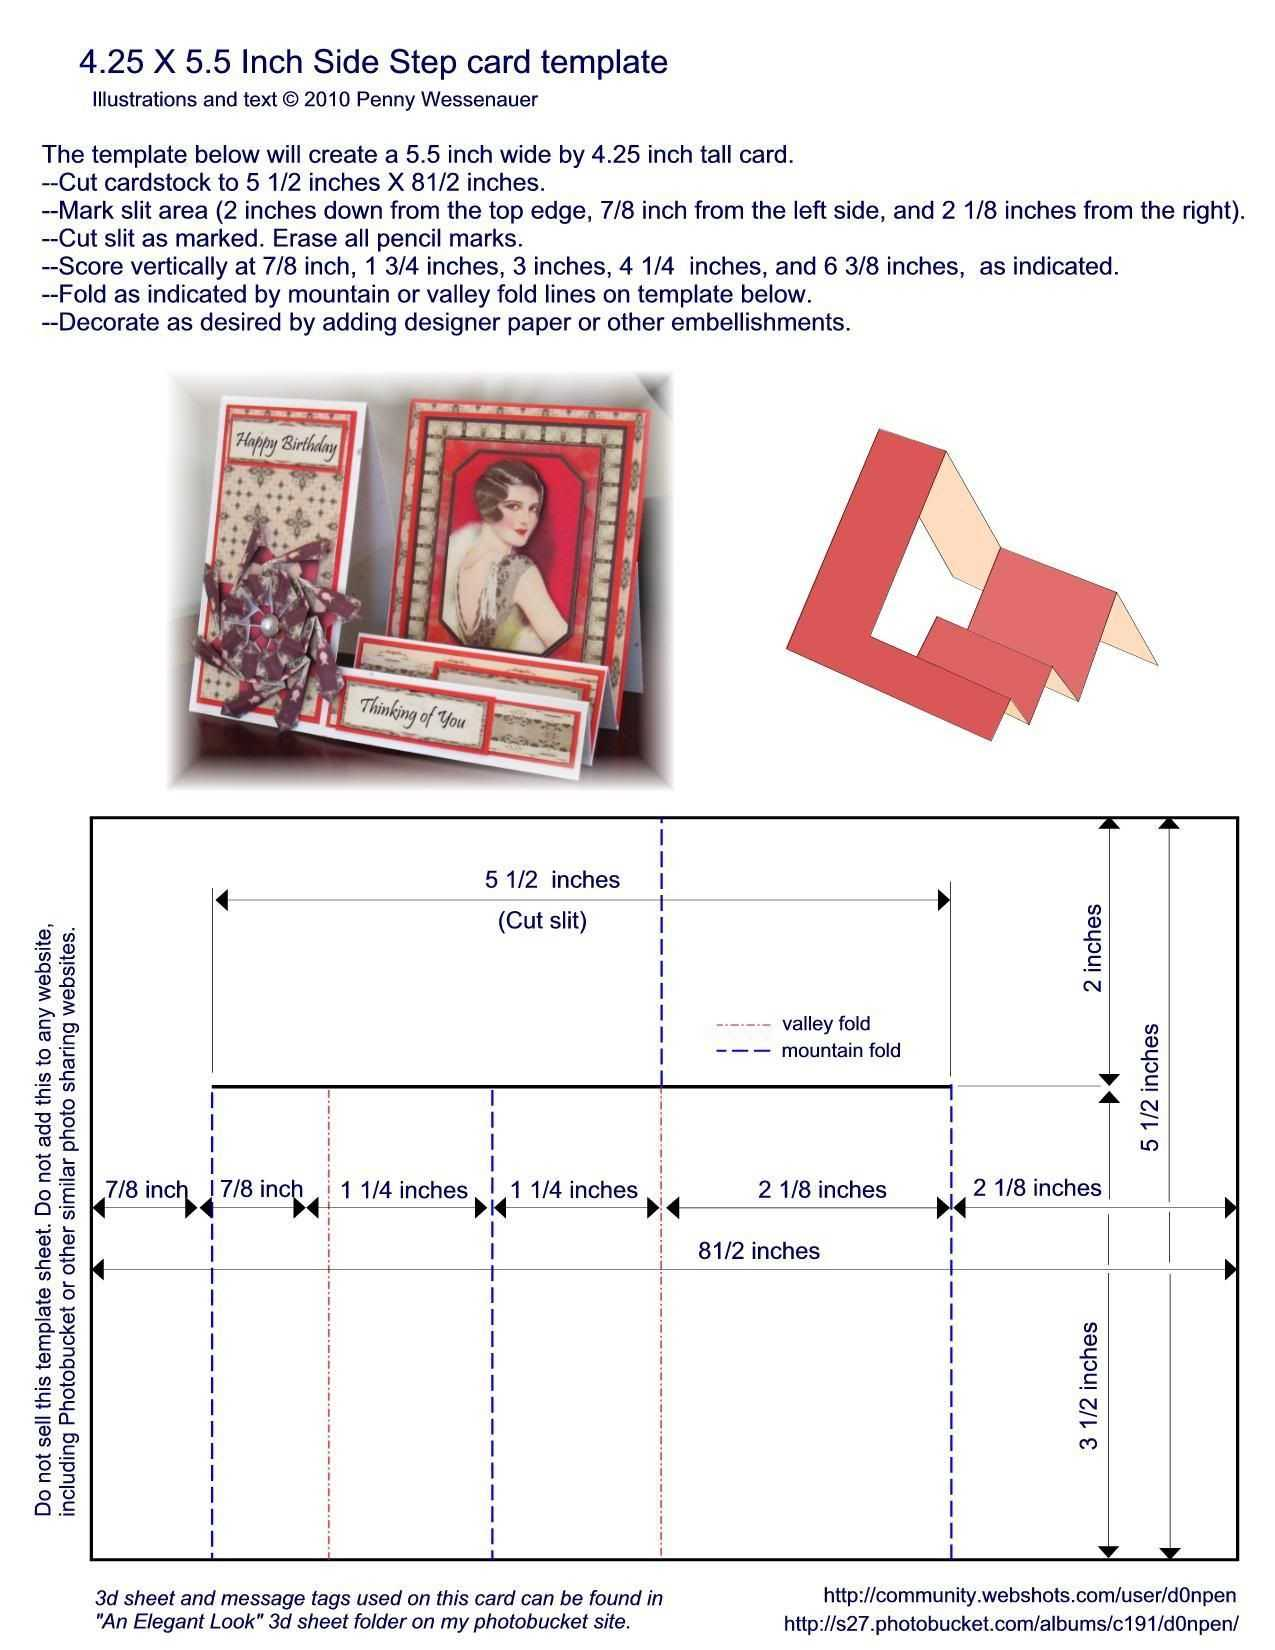 A2 (4.25 X 5.5) Side Step Card Template   Patterns For Card For A2 Card Template